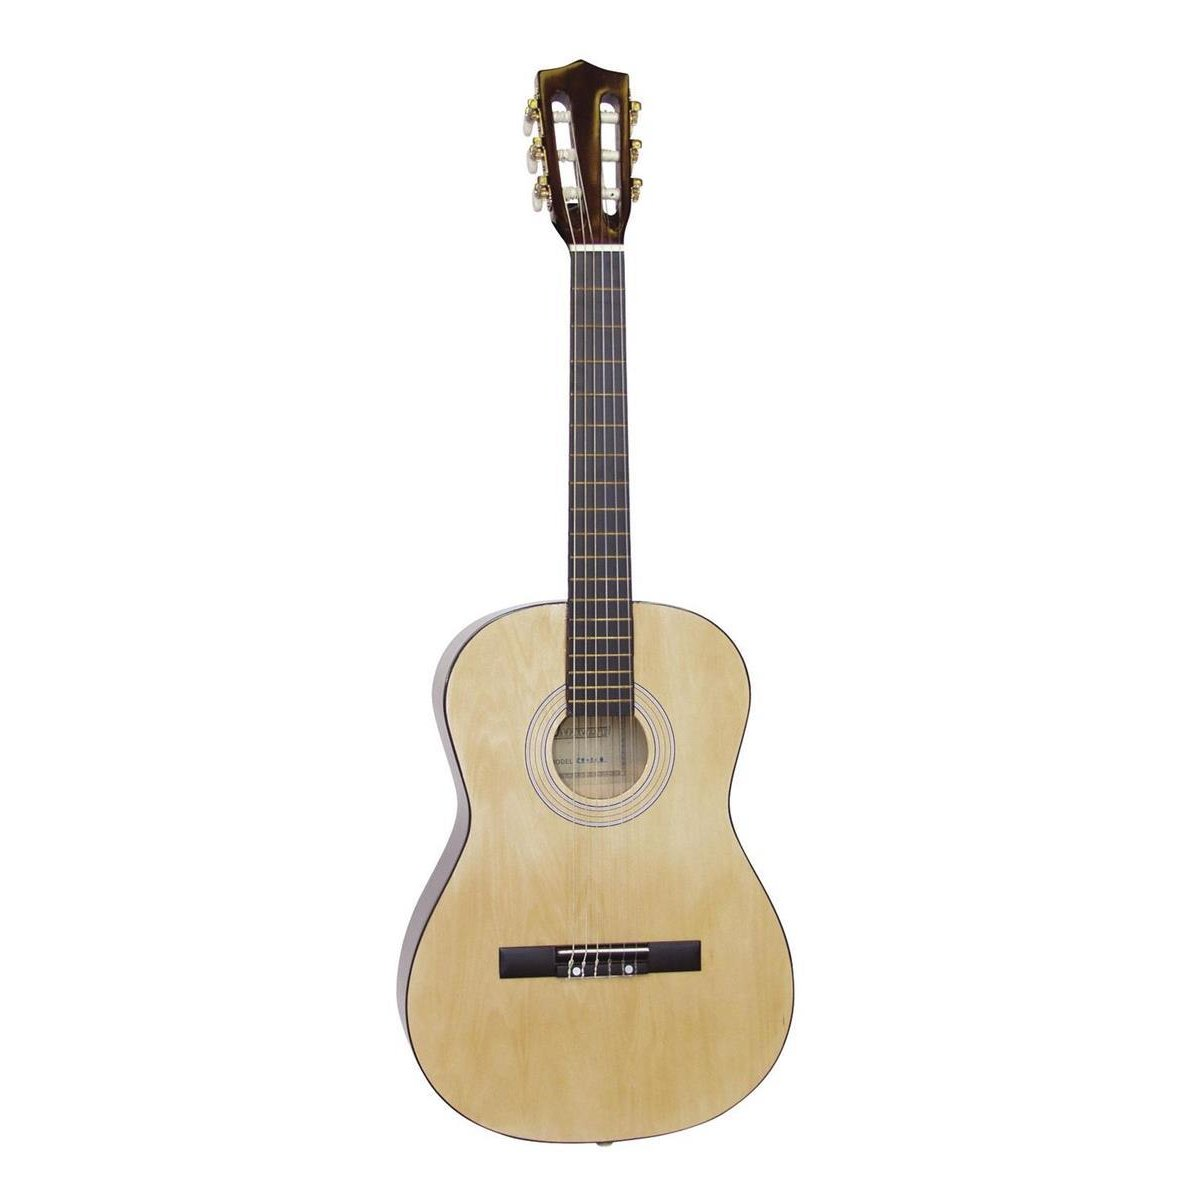 Dimavery AC-303 Classical Guitar 3/4, nature